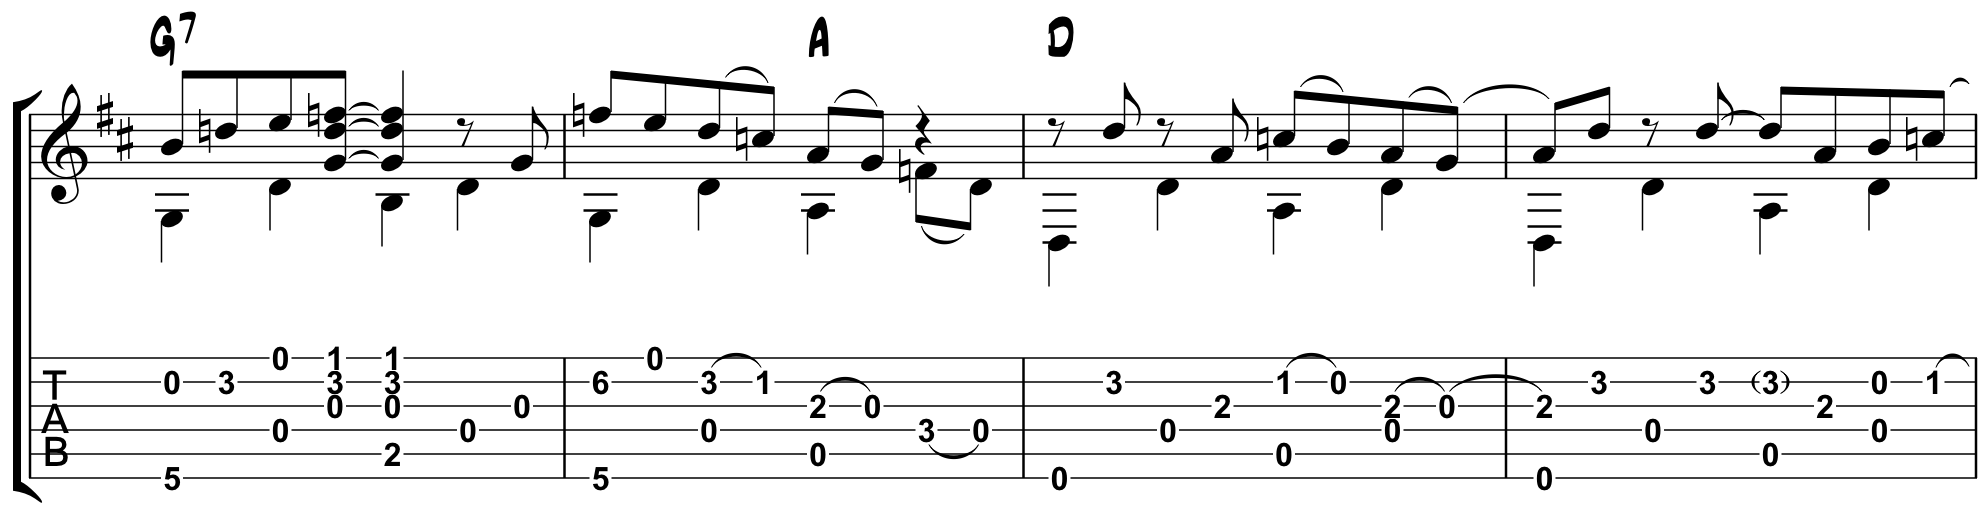 D-Mocracy: Fingerstyle Blues in Dropped-D Tuning